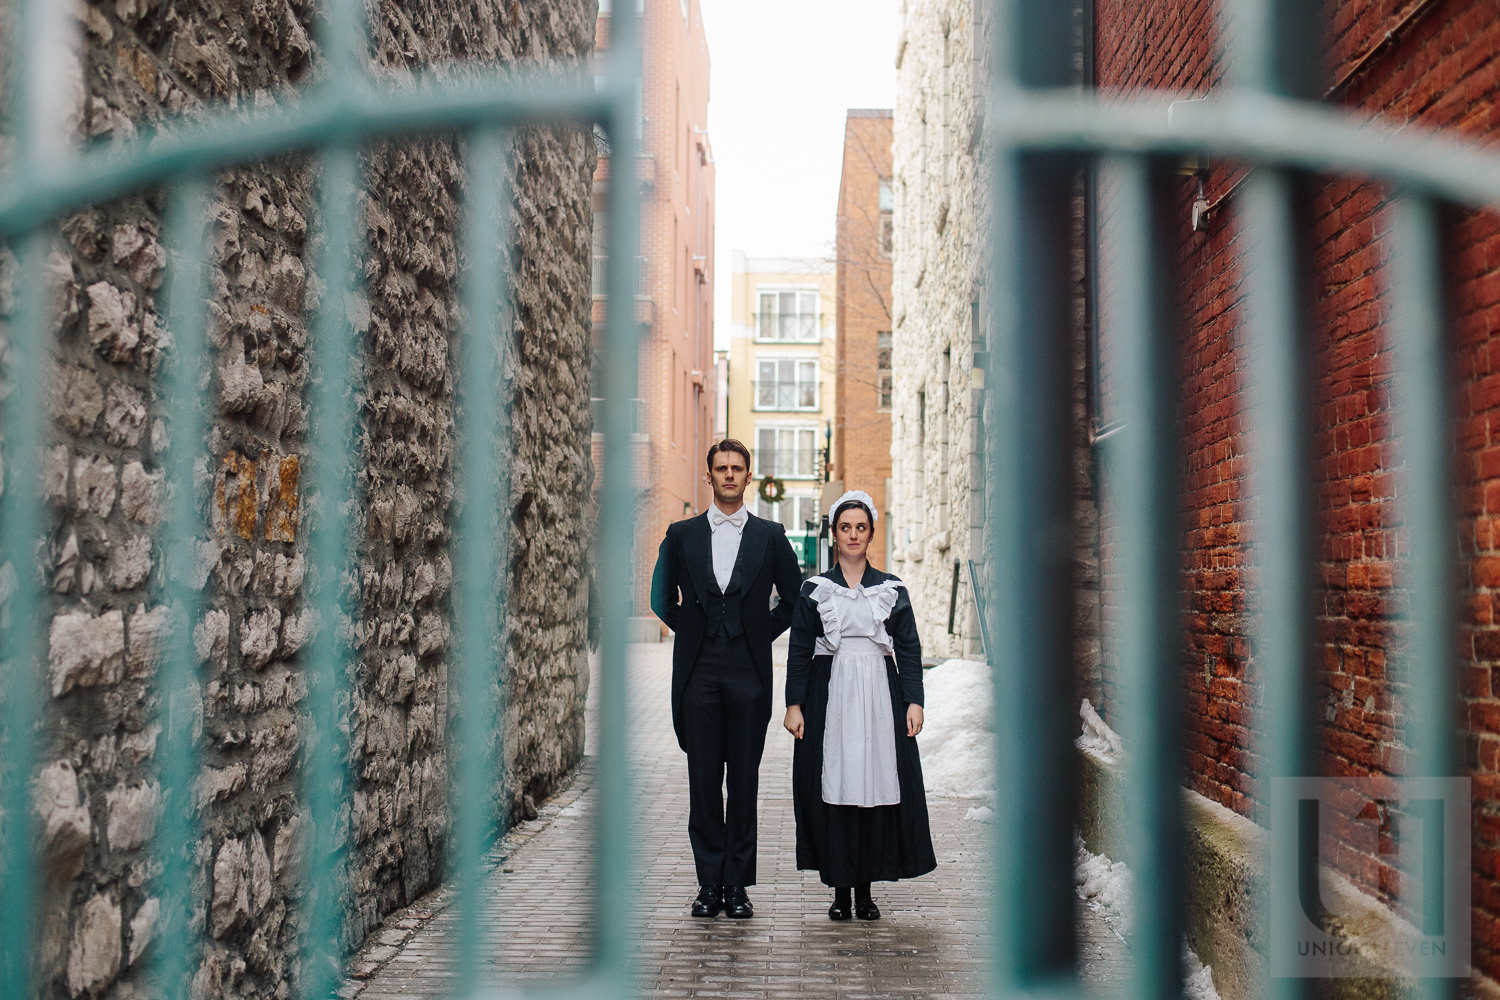 Engagement shoot with the couple dressed in a butler and maid costume